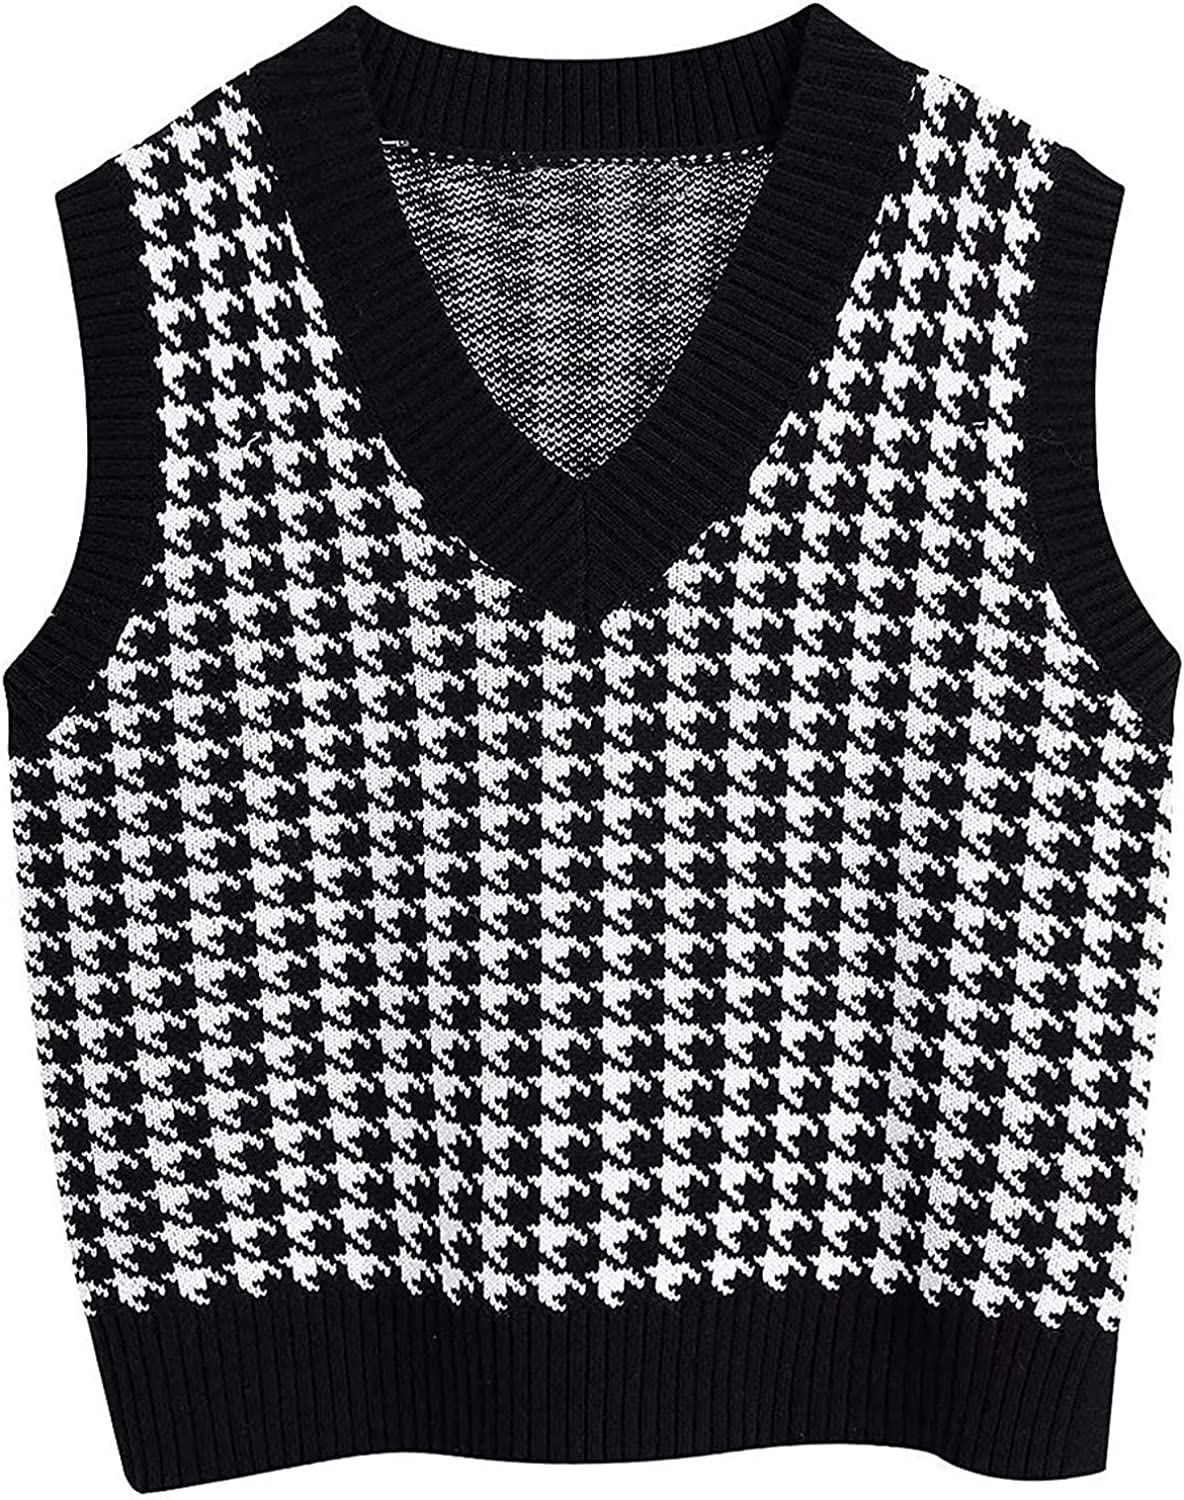 Women Knitted Vest Sweater V Neck Sleeveless Tank Tops Waistcoat 90s Classic Houndstooth Print Pullover Knitwear